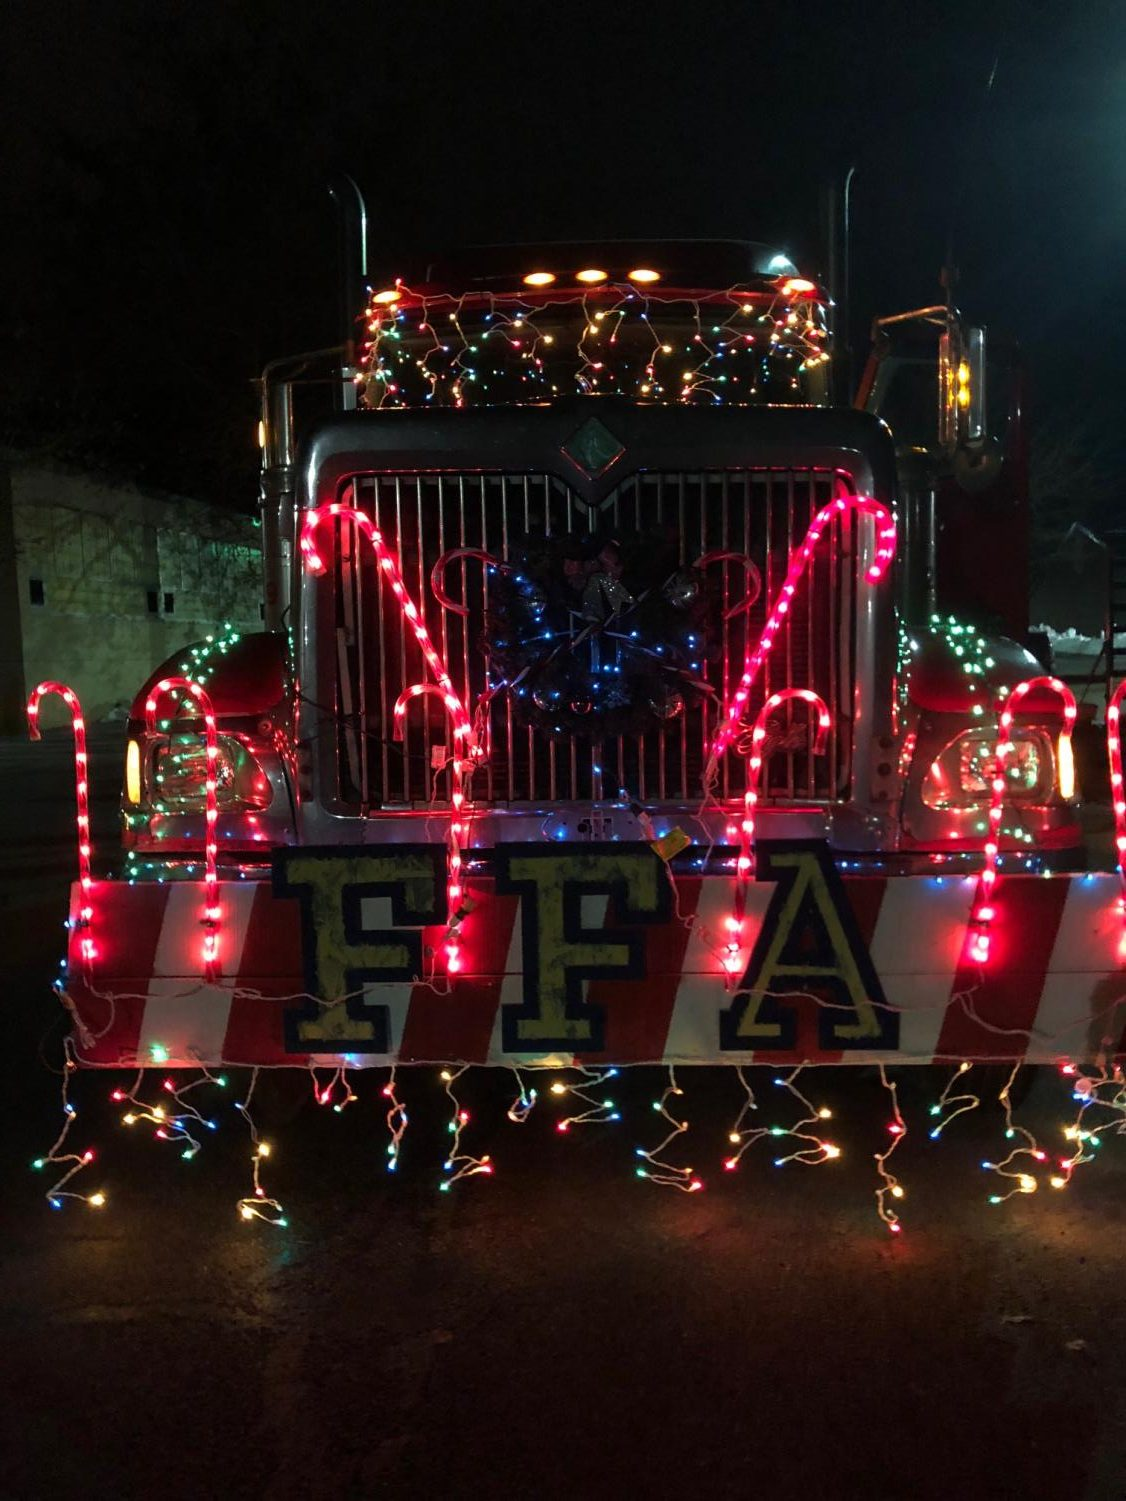 The front of the Tyrone FFA Tyrone Christmas parade float